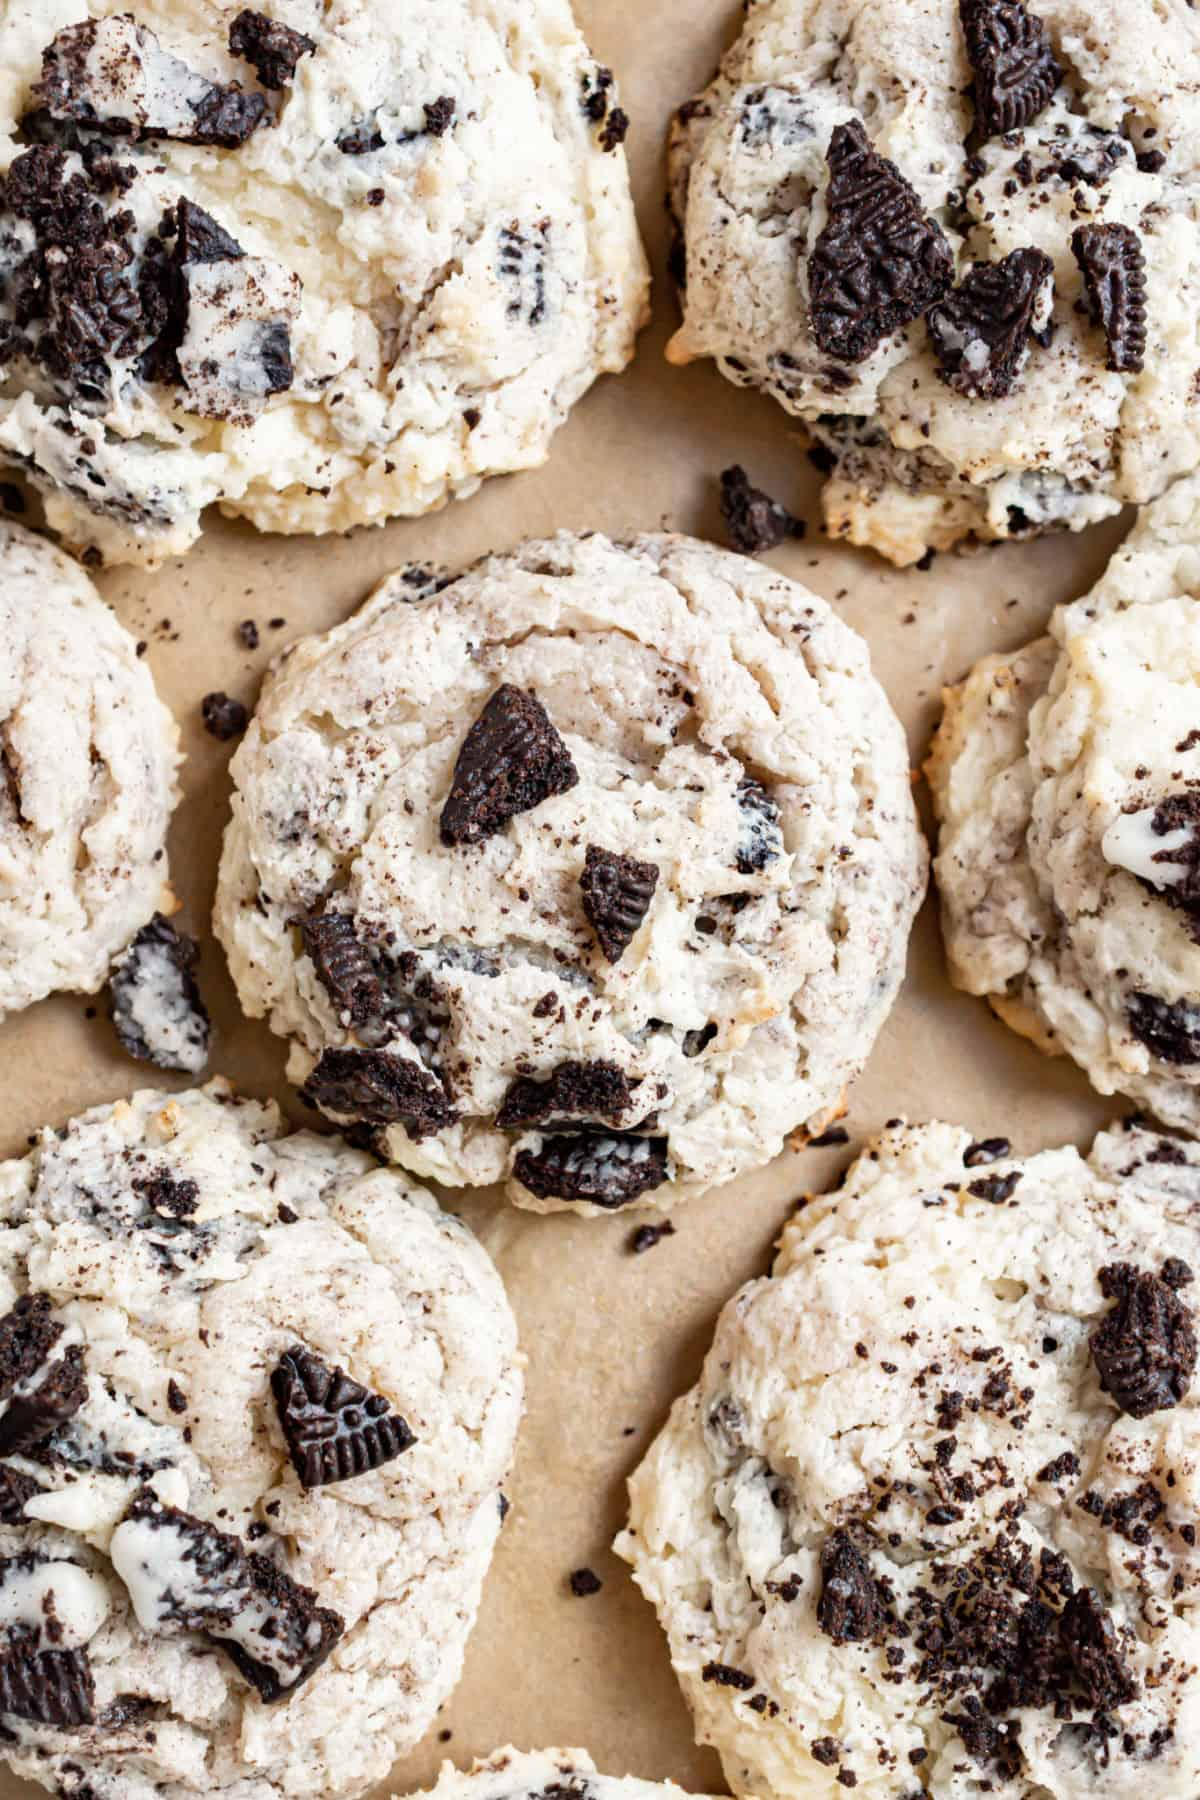 Oreo cheesecake cookies on parchment paper.